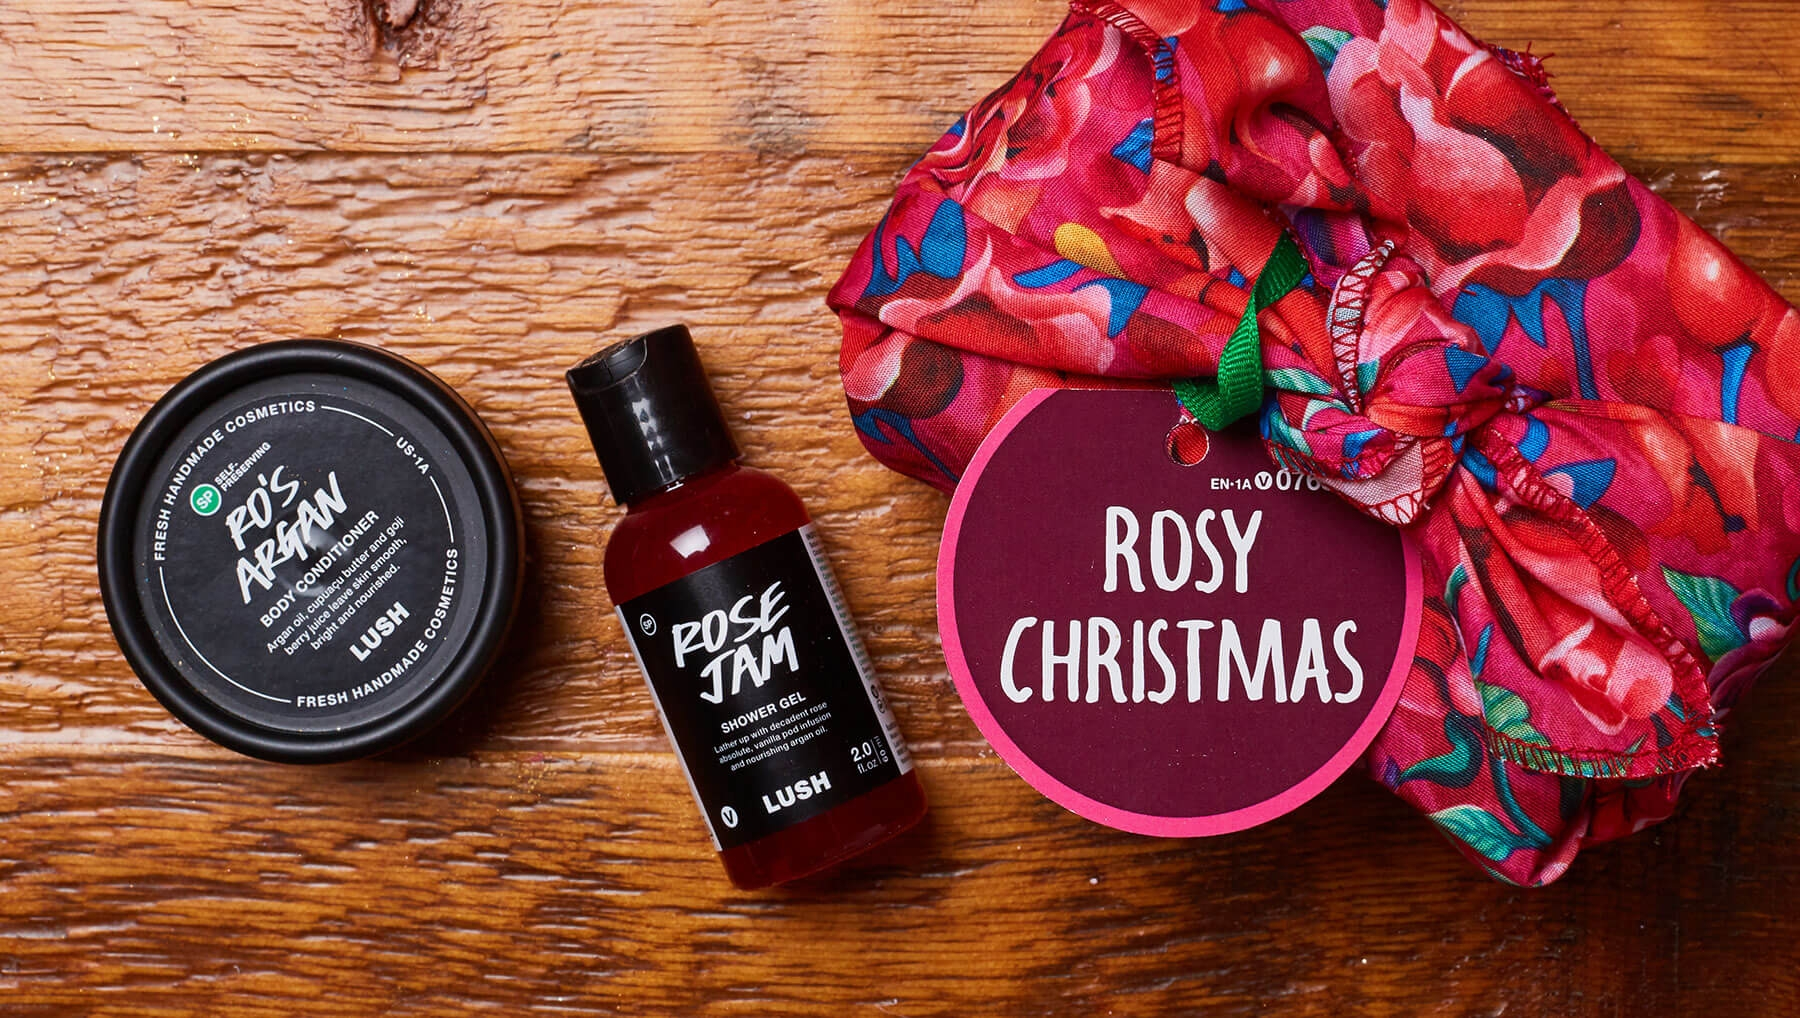 Rosy Christmas from Lush Cosmetics - $19.95 - Perfect for your girlfriend that just needs to relax and cozy up in a nice warm bath!